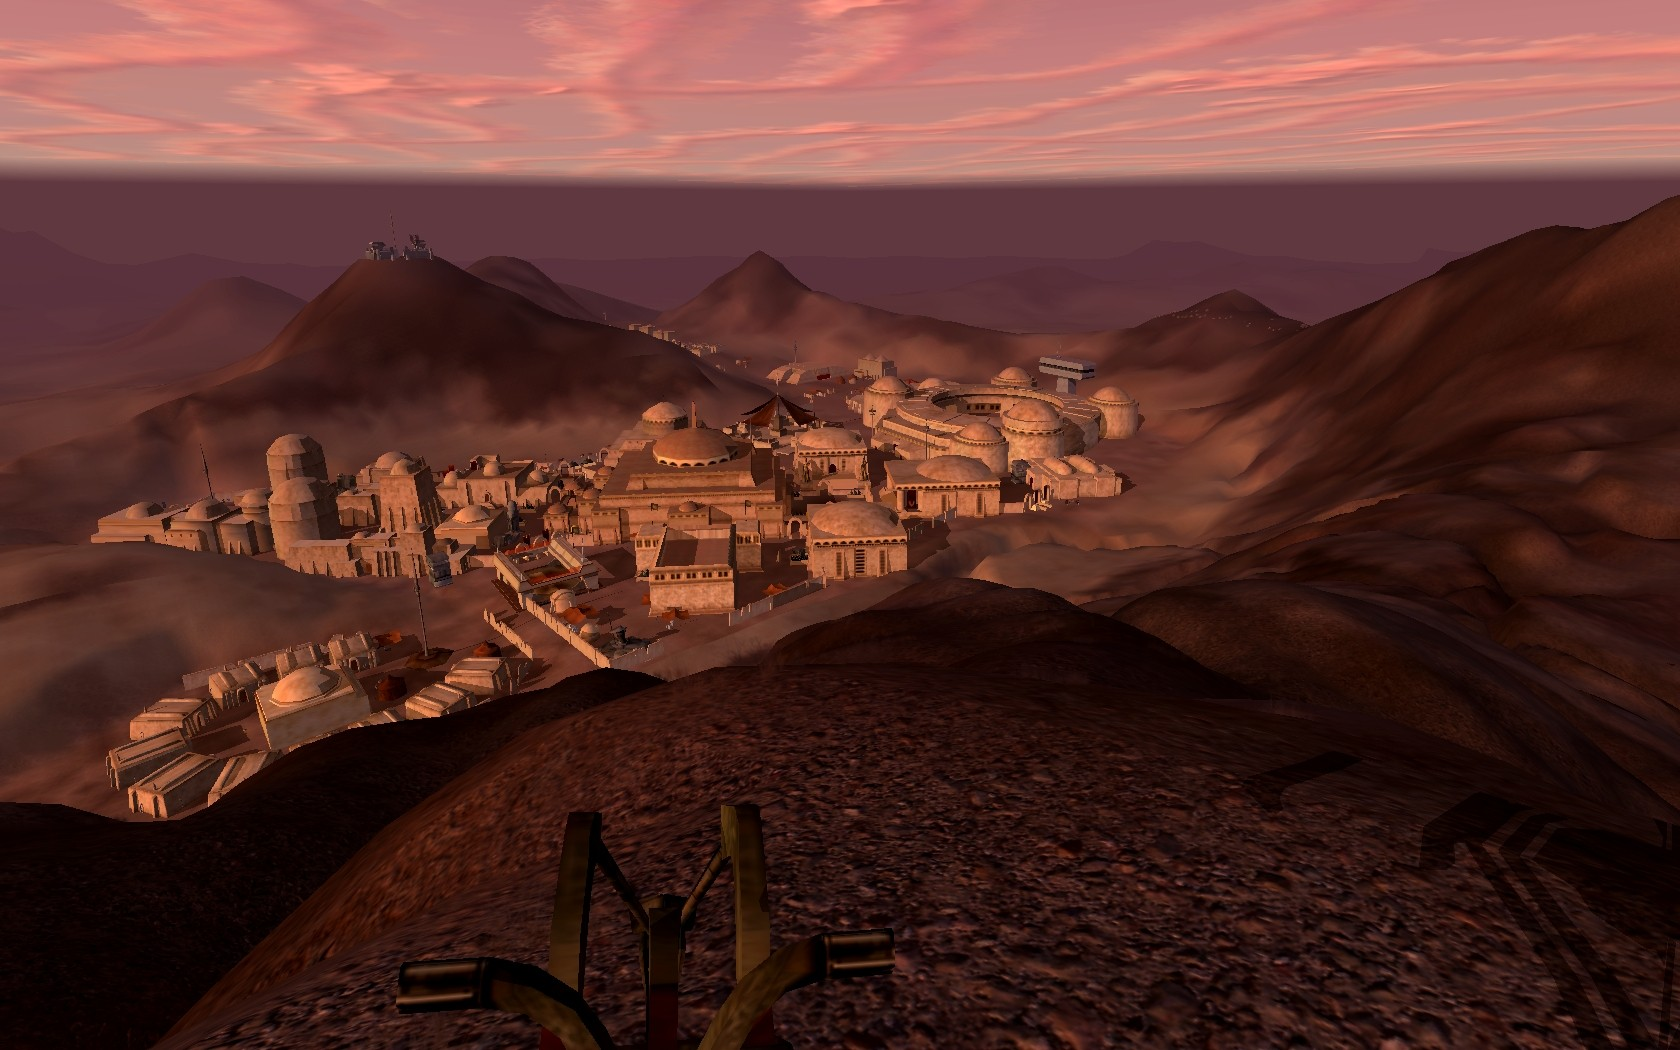 Star Wars Galaxies - Bestine Township